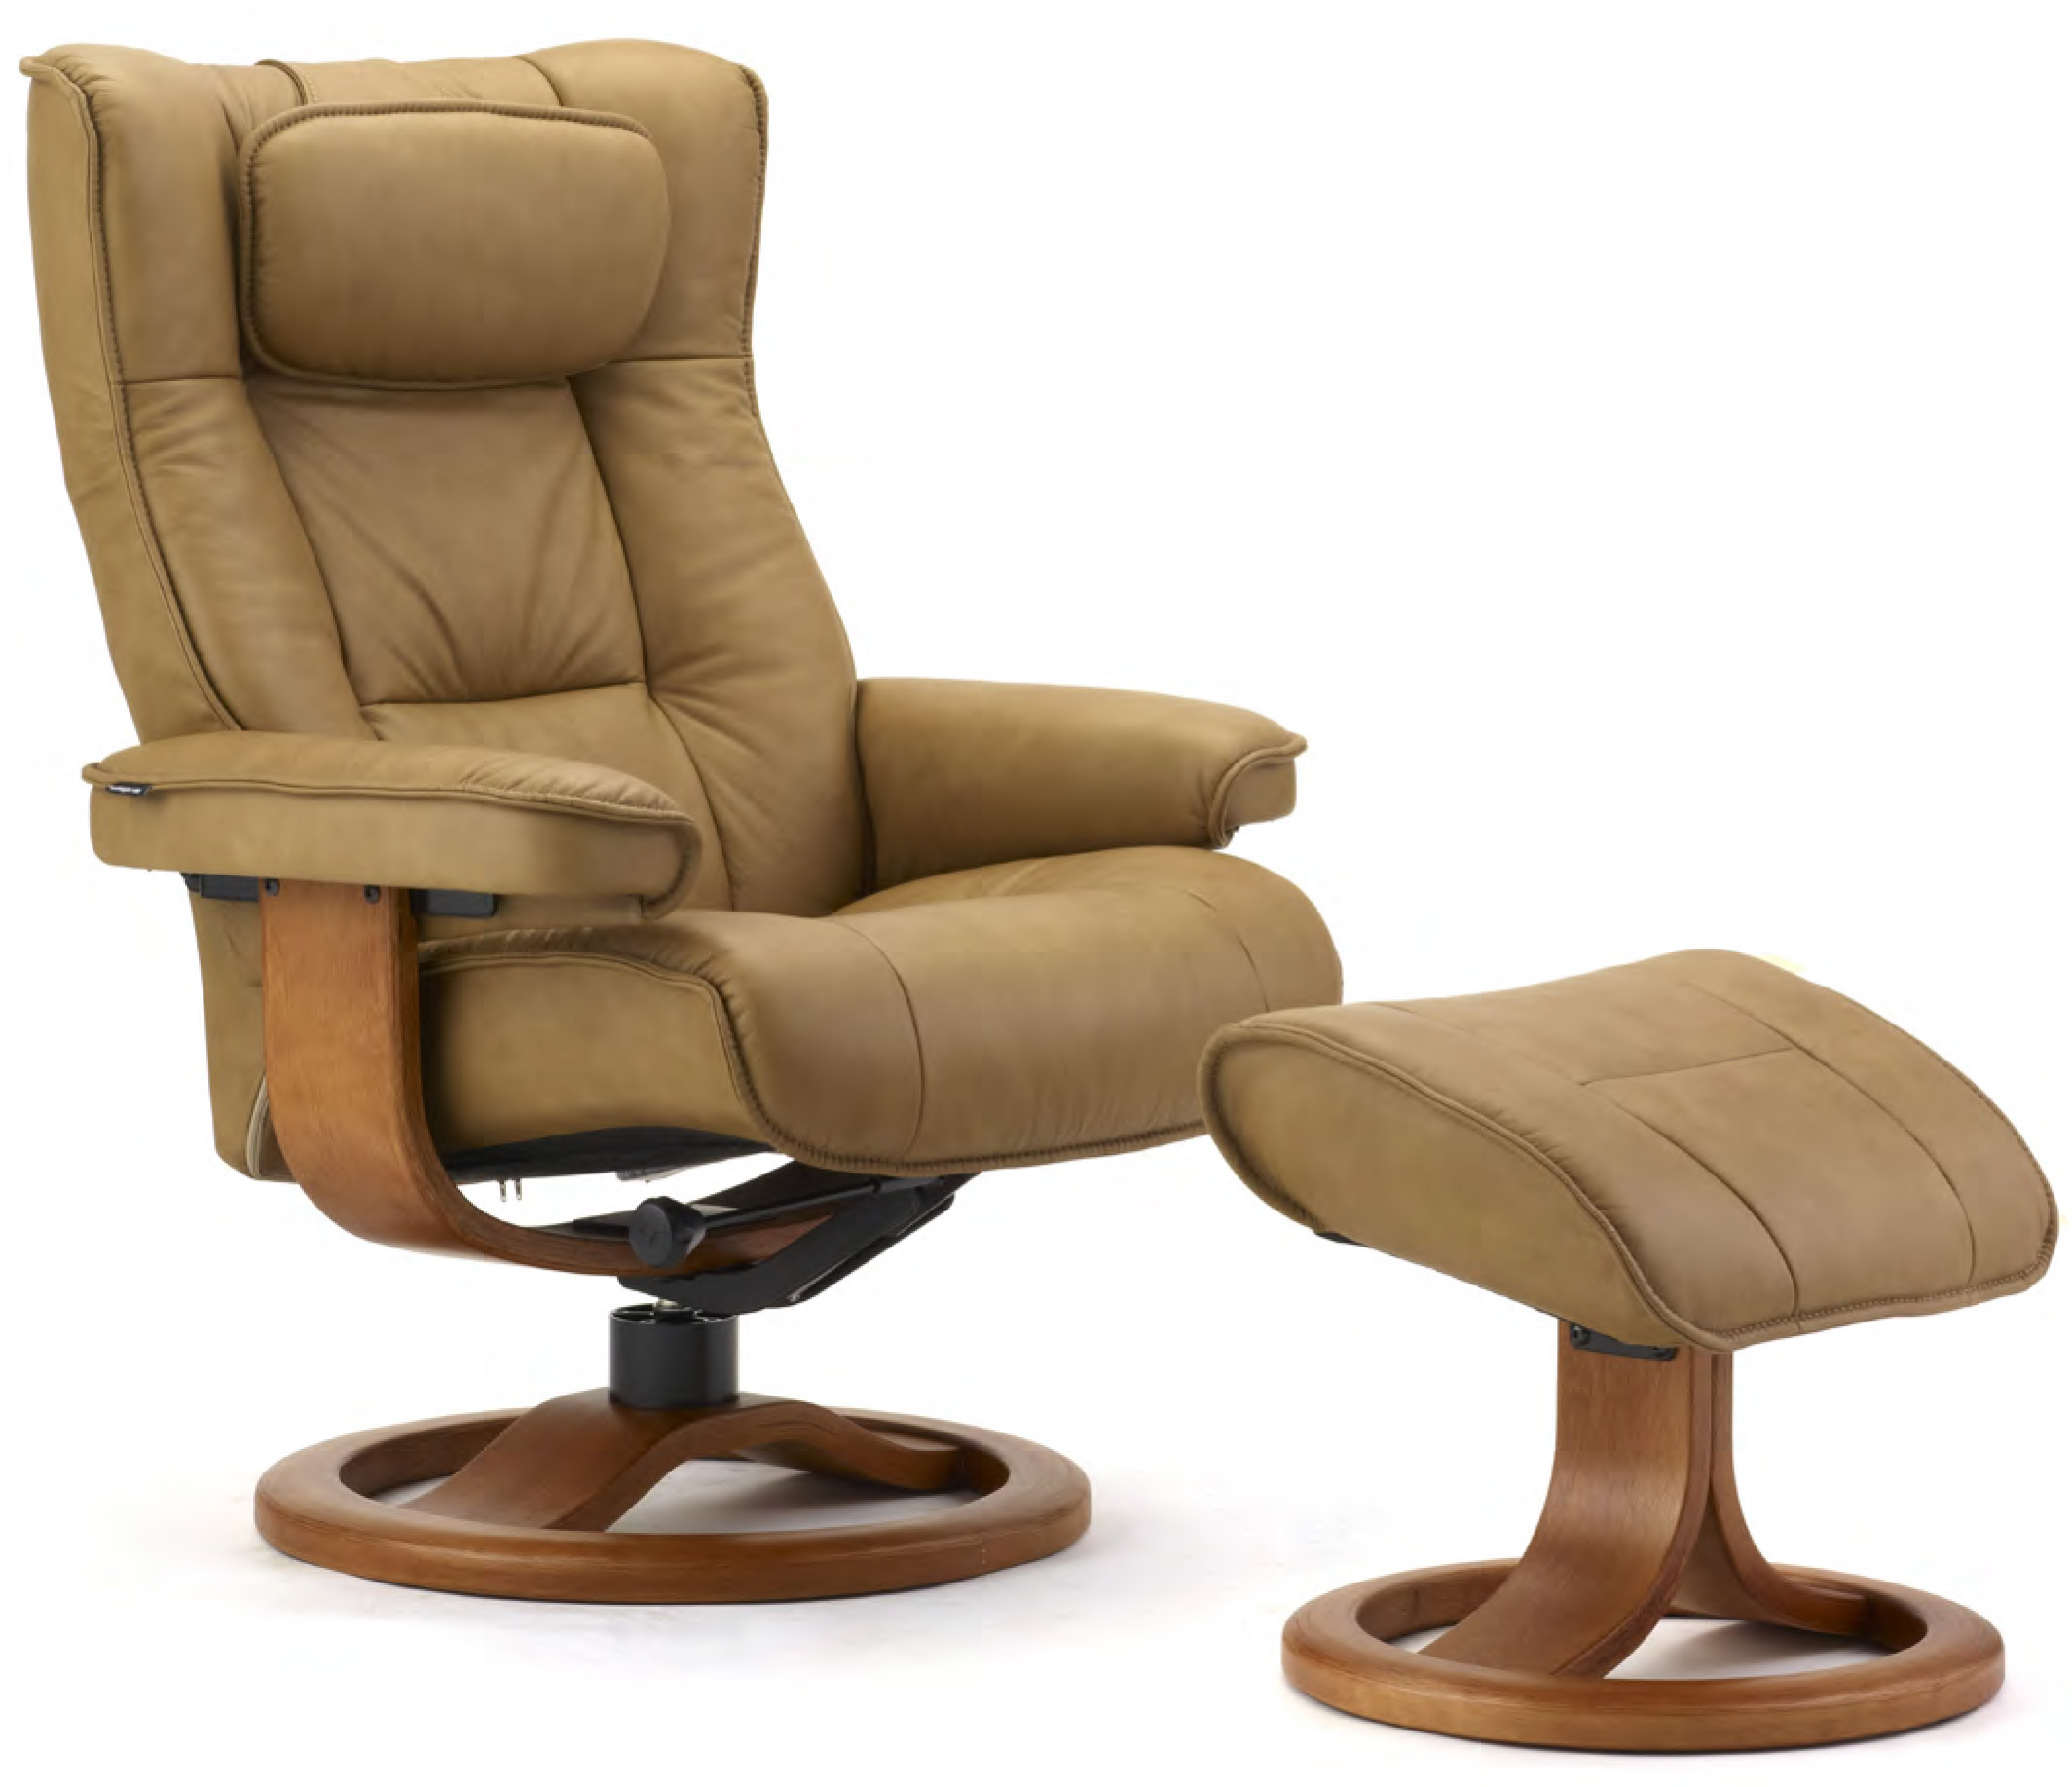 Fjords Scandic Leather Recliner Chair with the R Frame Wood Base  sc 1 st  Vitalityweb.com & Fjords Regent Ergonomic Leather Recliner Chair + Ottoman ... islam-shia.org